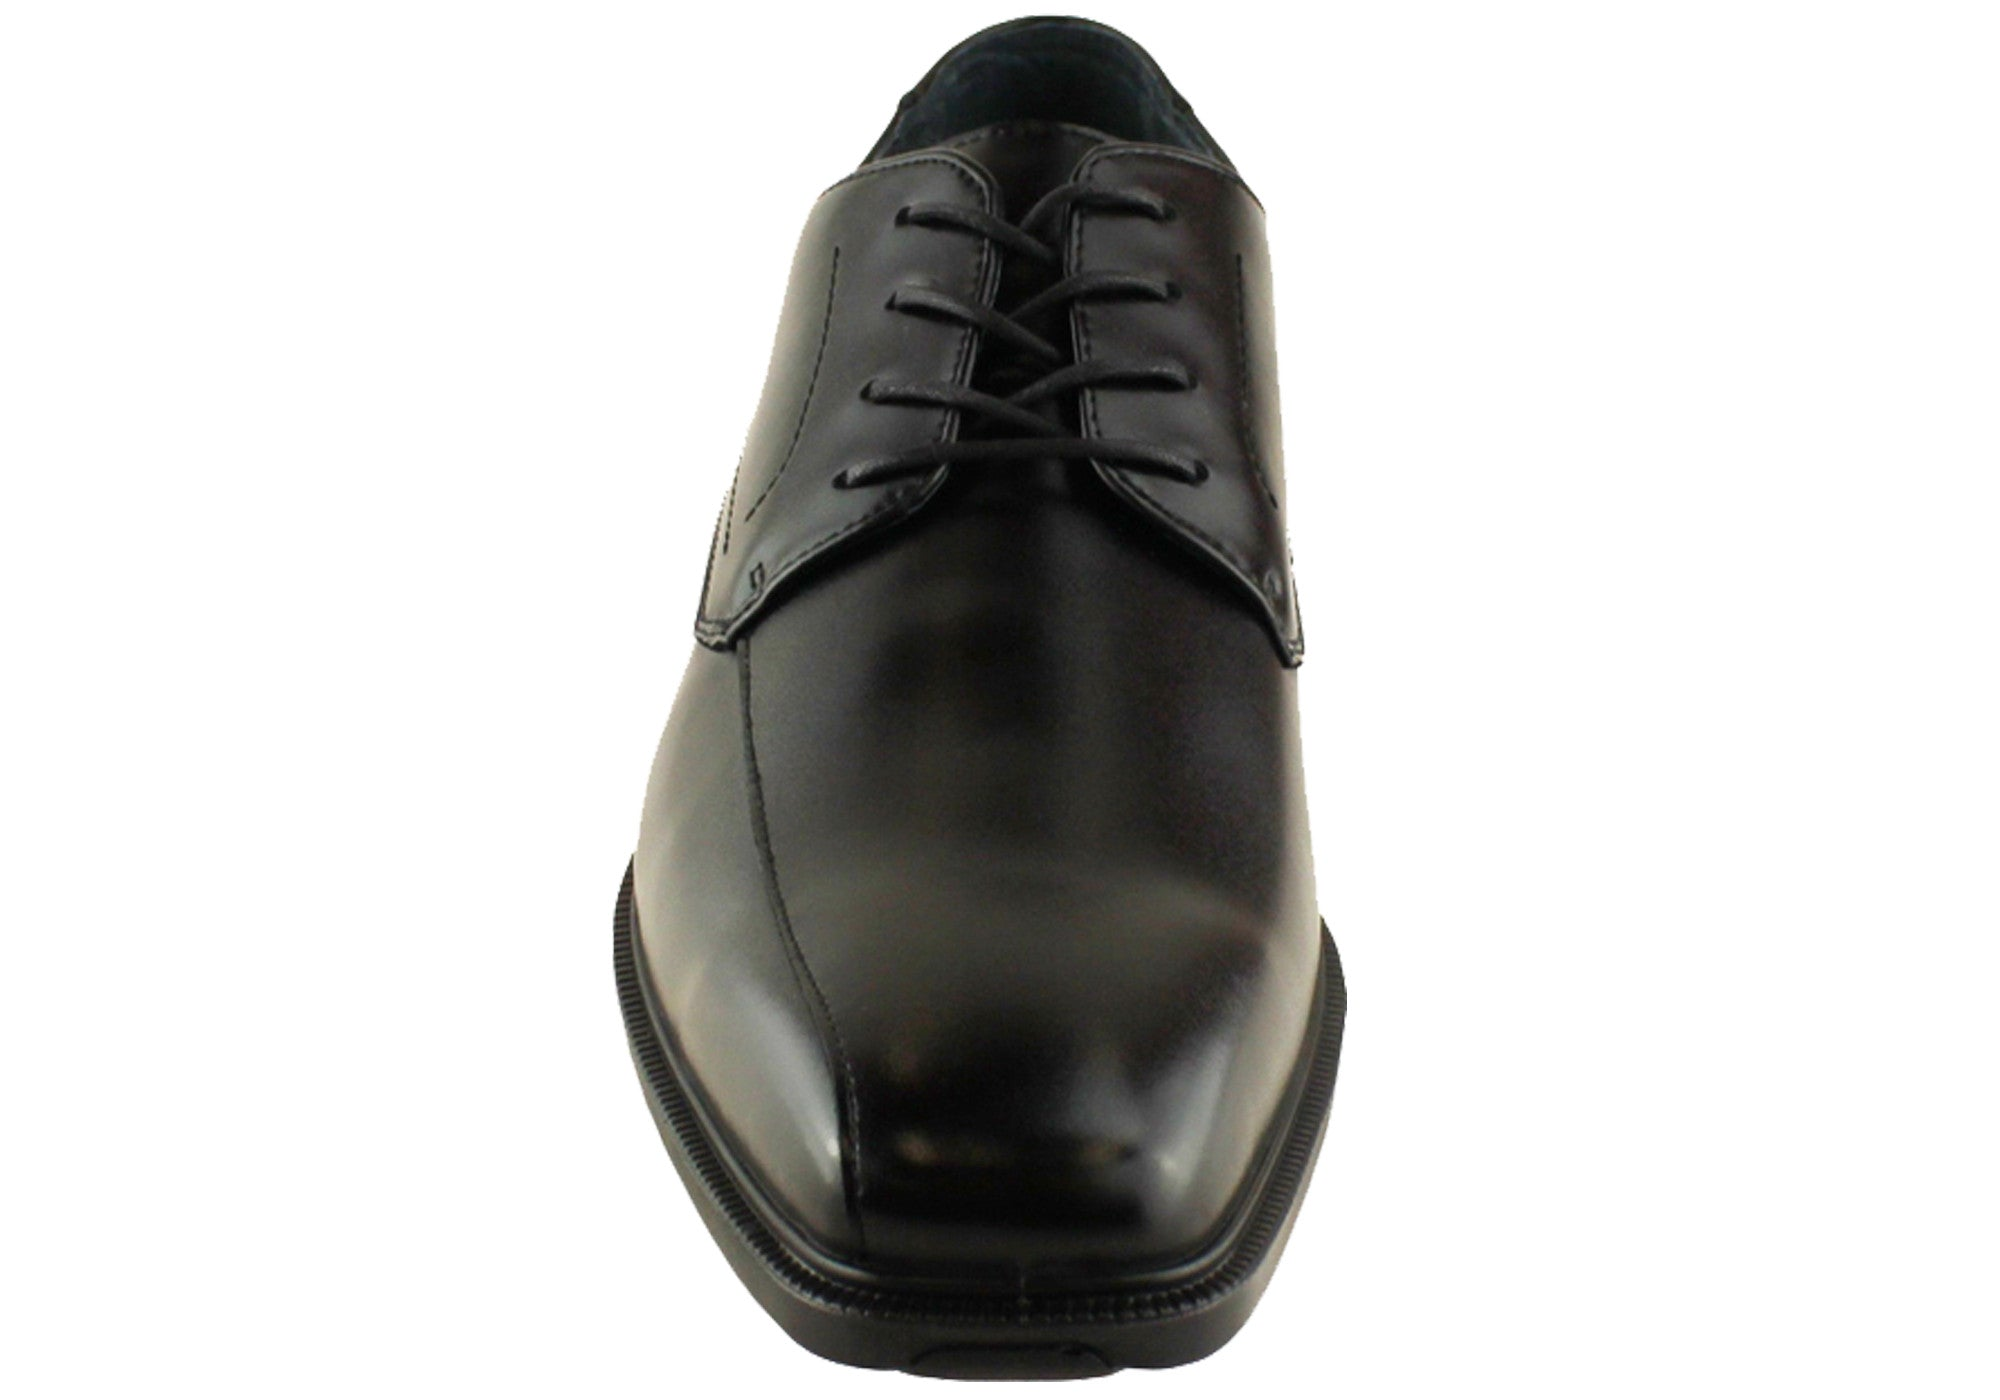 Hush Puppies Merchant Mens Leather Dress Shoes Wide Fit